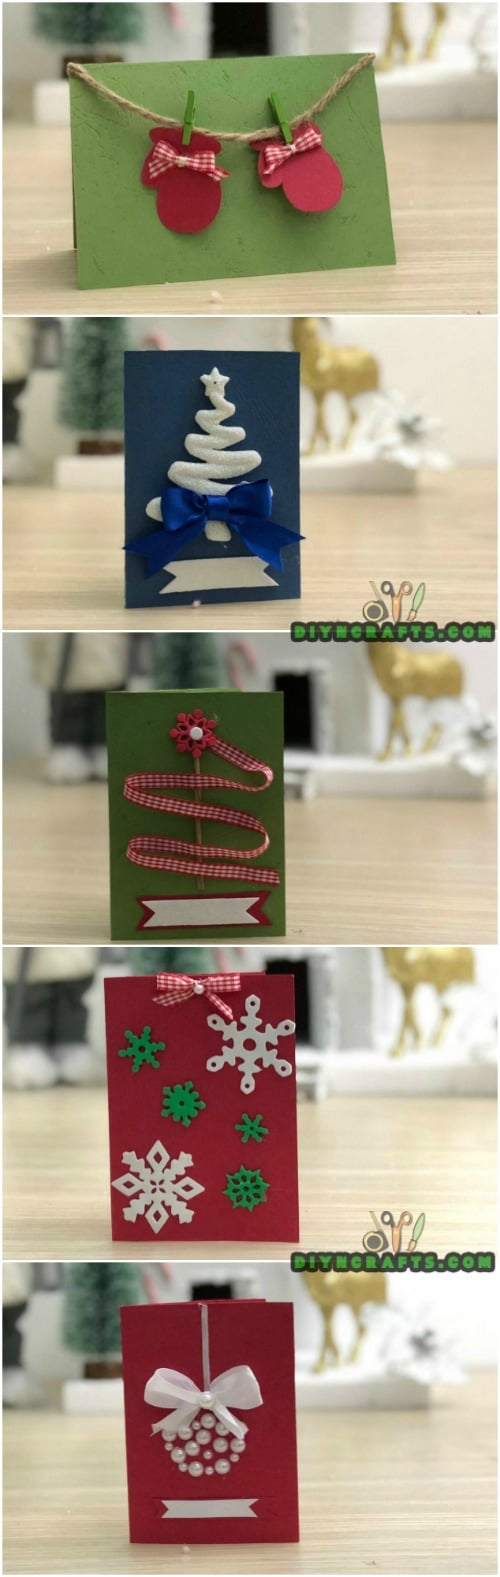 Send Your Seasons Greetings In Style With These 5 Diy Christmas